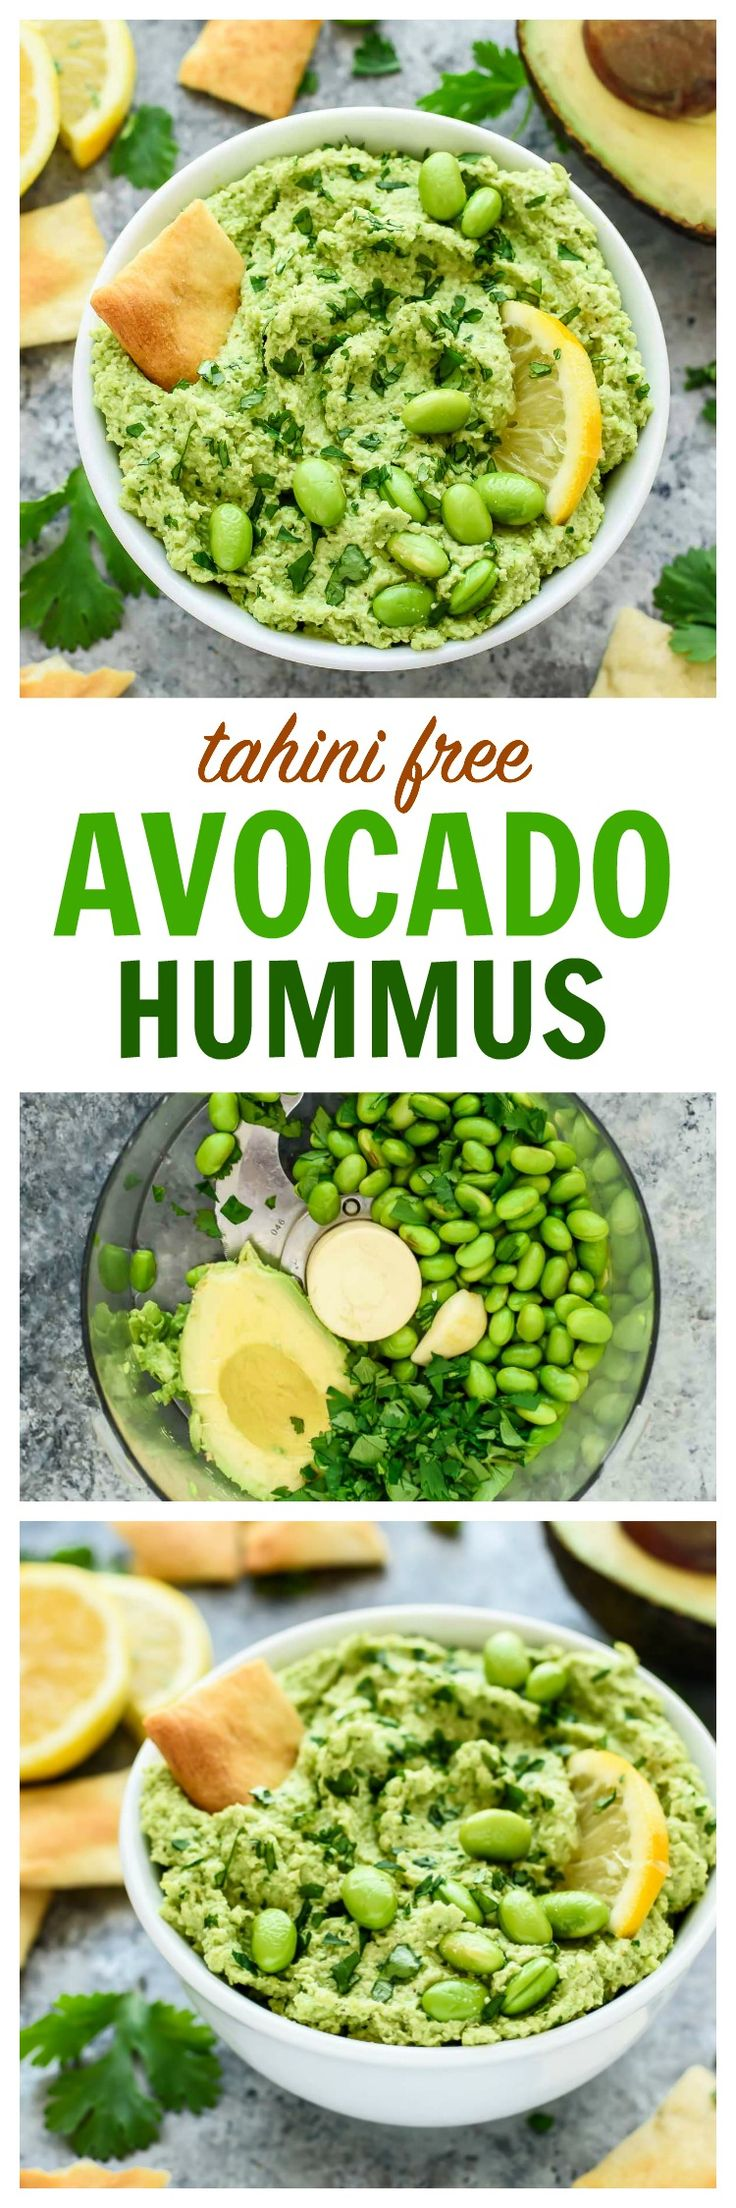 With this easy tahini-free avocado hummus recipe, you don't need tahini to create a super flavorful hummus dip! Made with avocado, edamame, fresh lemon, and garlic. Vegan, gluten free, and packed with flavor! www.wellplated.com @wellplated